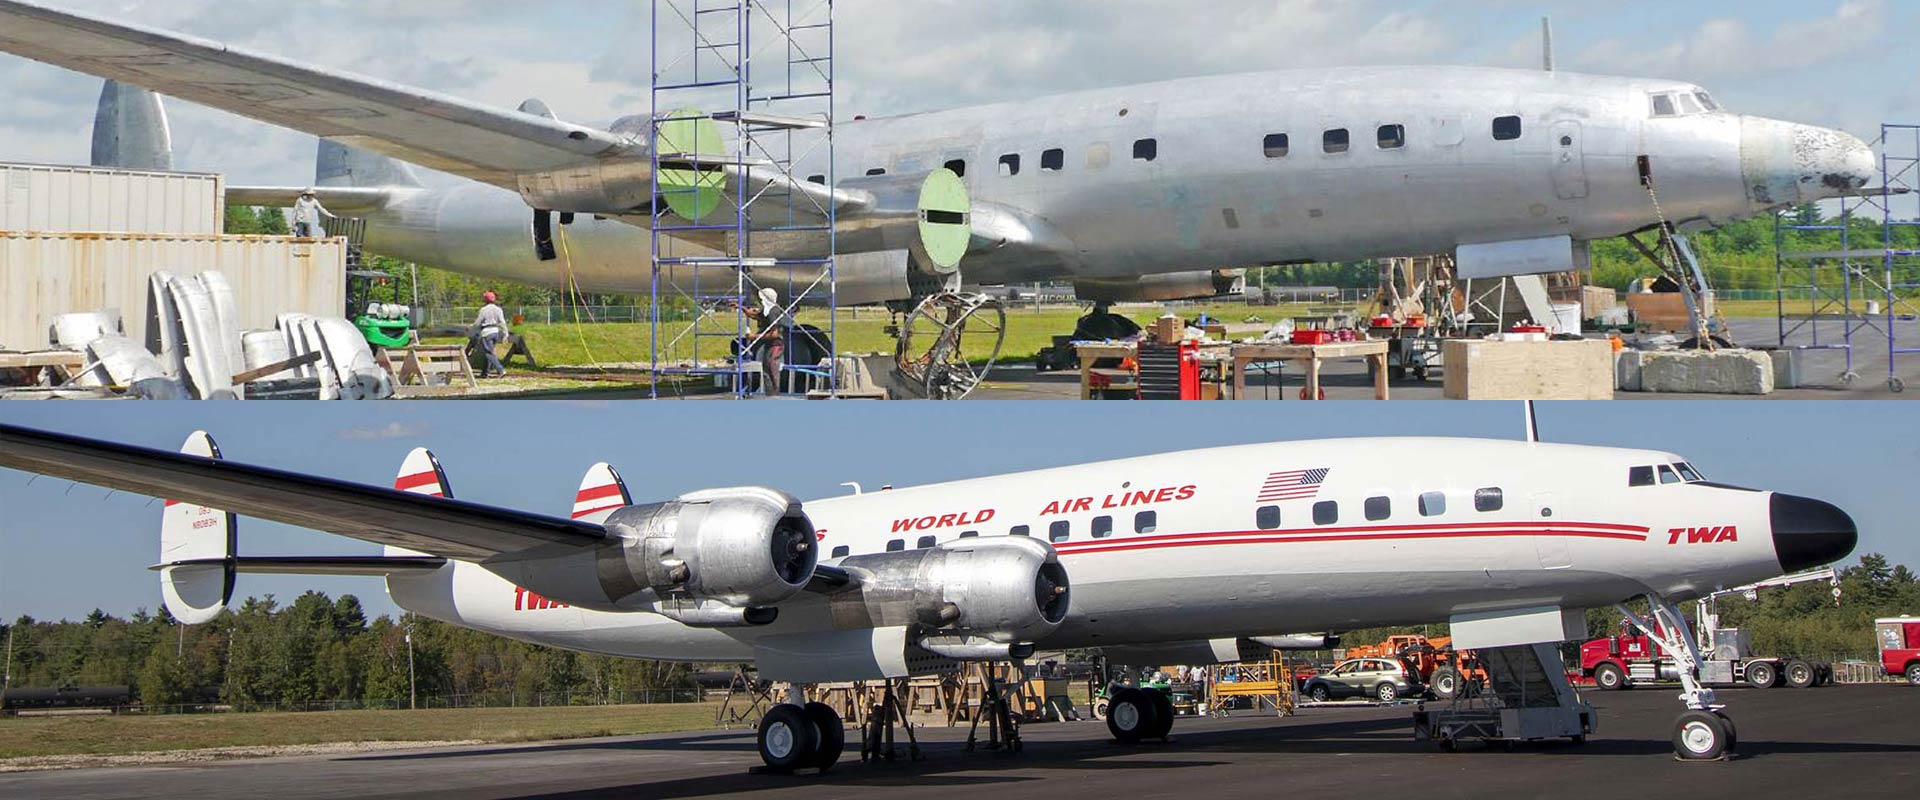 TWA_Connie_BeforeandAfter_FullPlane